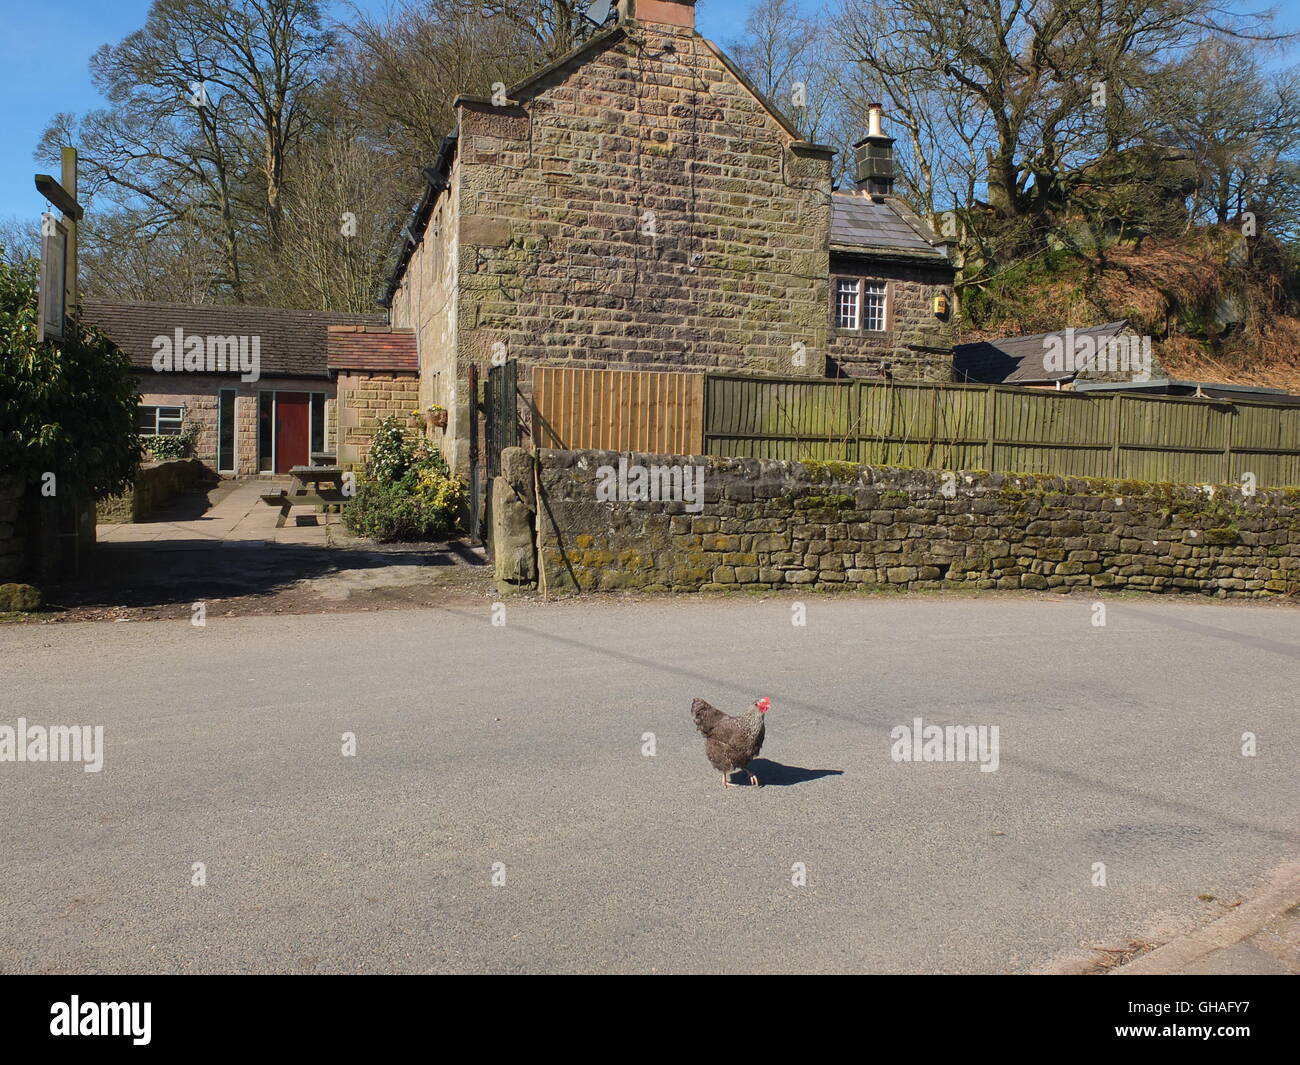 Why did the chicken cross the road? A chicken crossing the road outside the Druid Inn, Birchover, Derbyshire. - Stock Image